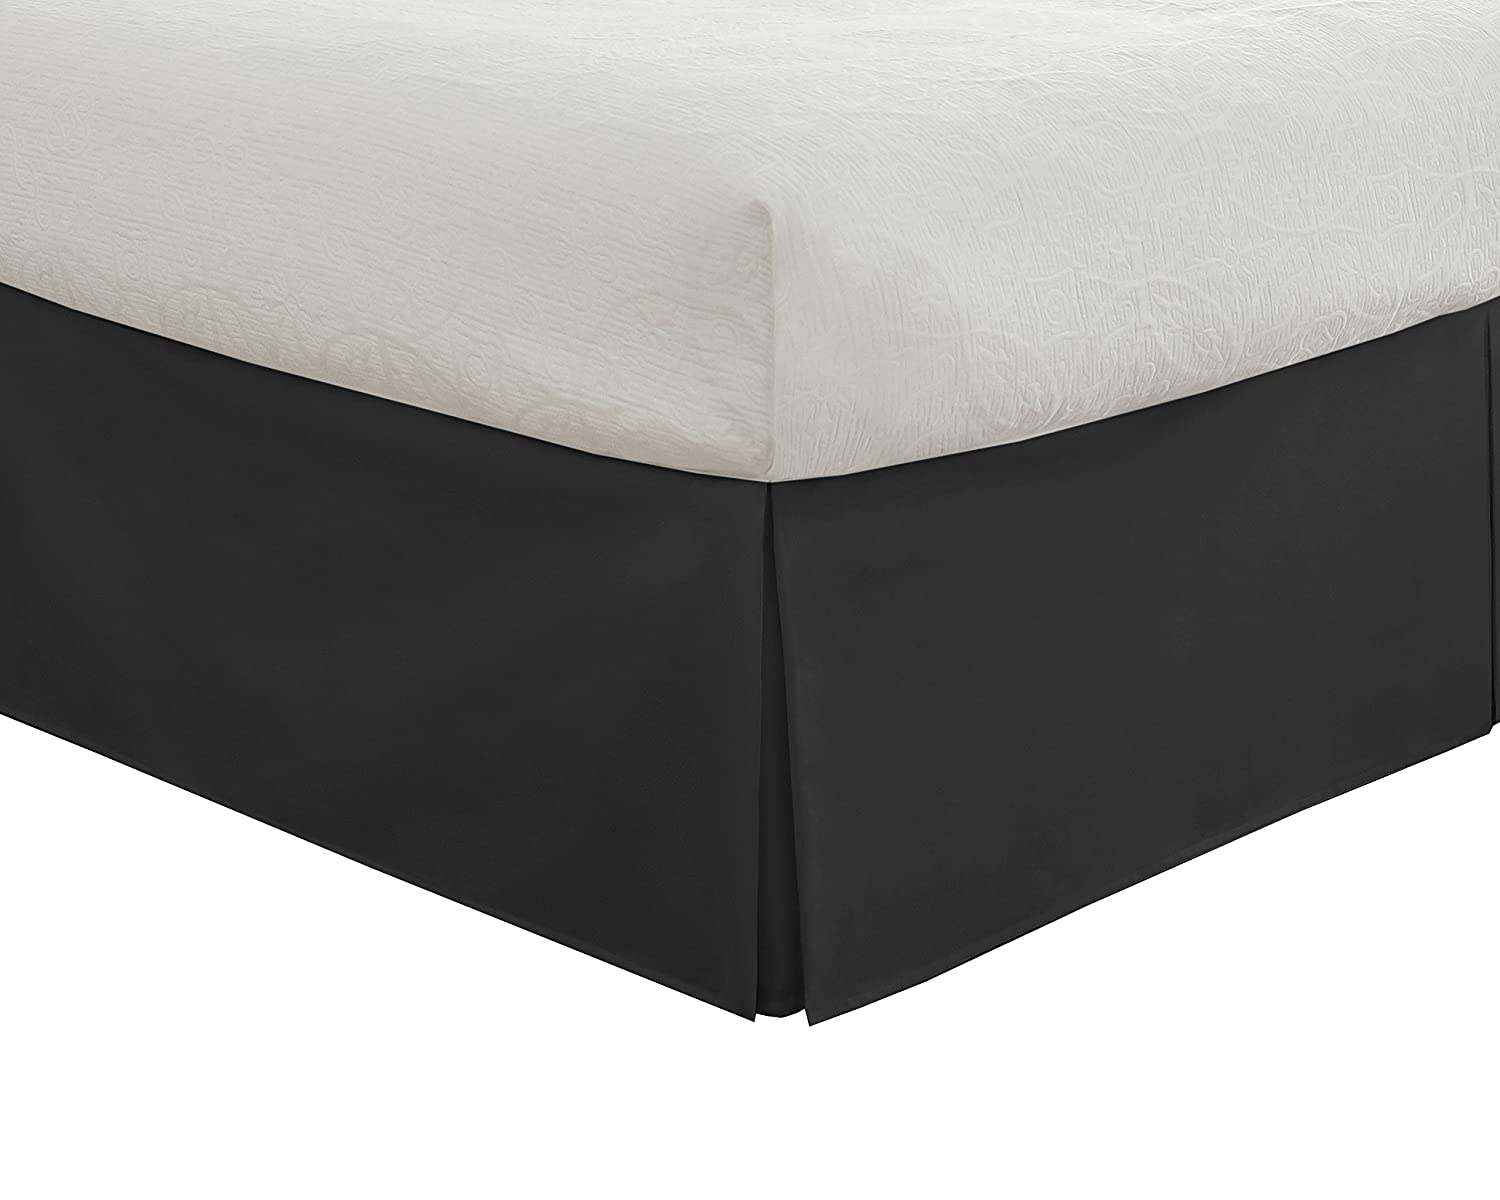 "Fresh Ideas Bedding Tailored Bedskirt, Classic 14"" drop length, Pleated Styling, Twin, Black Levinsohn Textile FRE20114BLAC01"